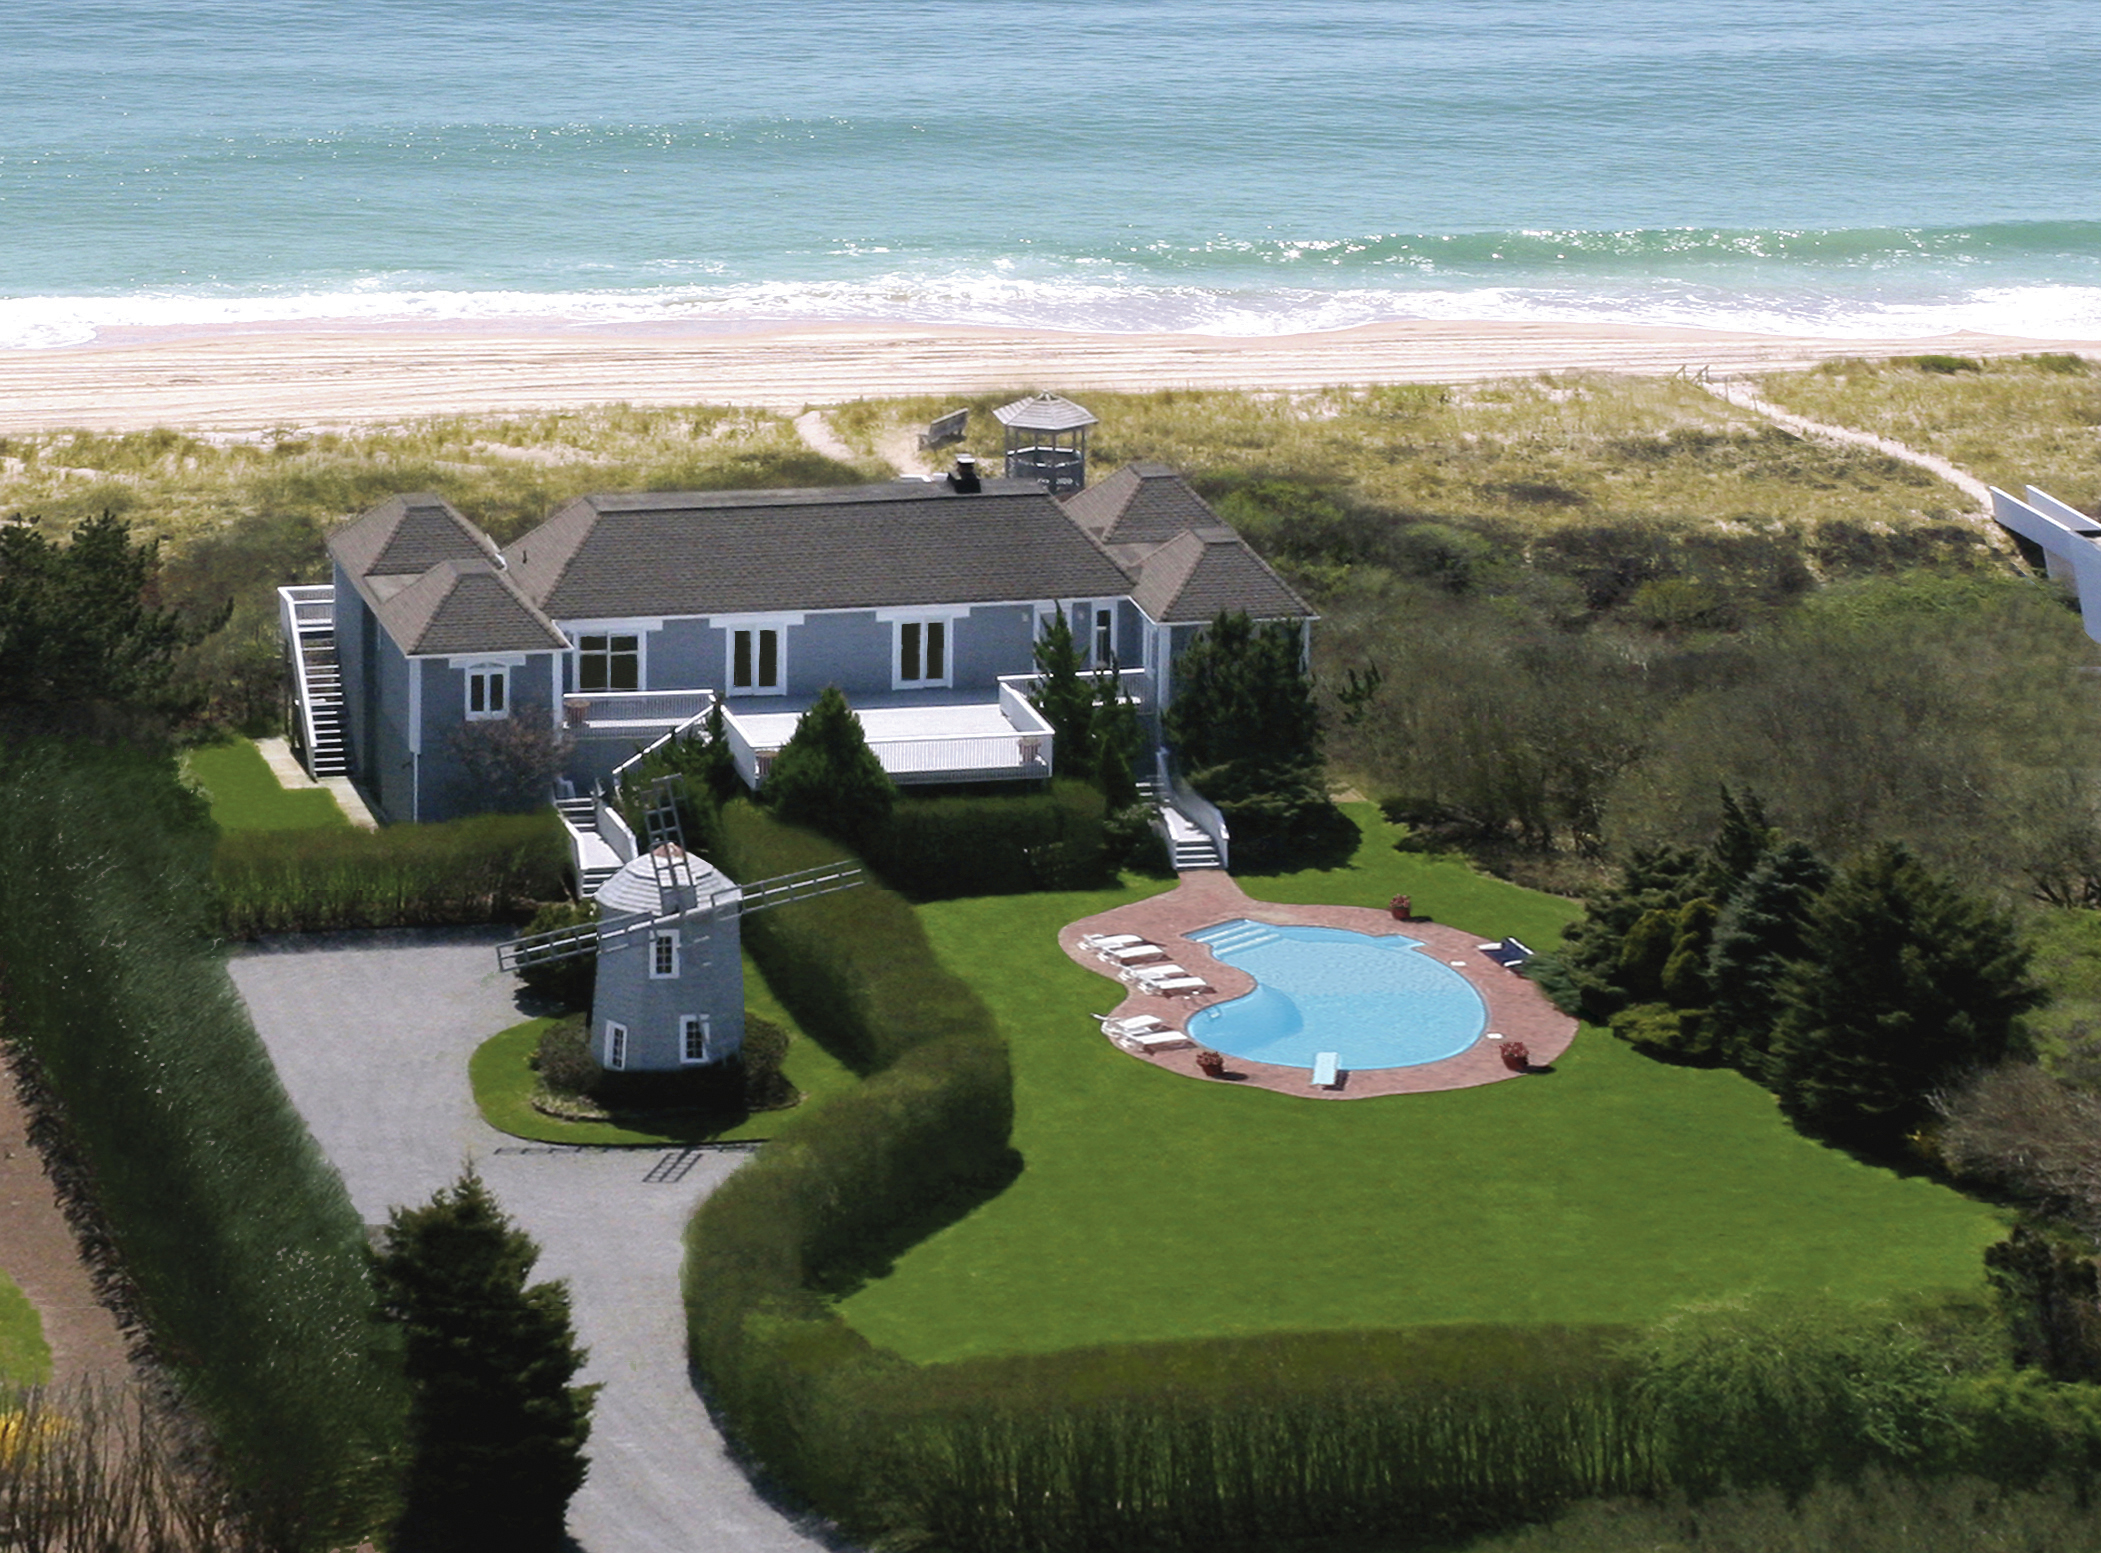 Carlton Chairman Howard L. Michaels Is Pleased To Announce That A Prime  Oceanfront Home In Bridgehampton, Ny, Where Former President Bill Clinton  And